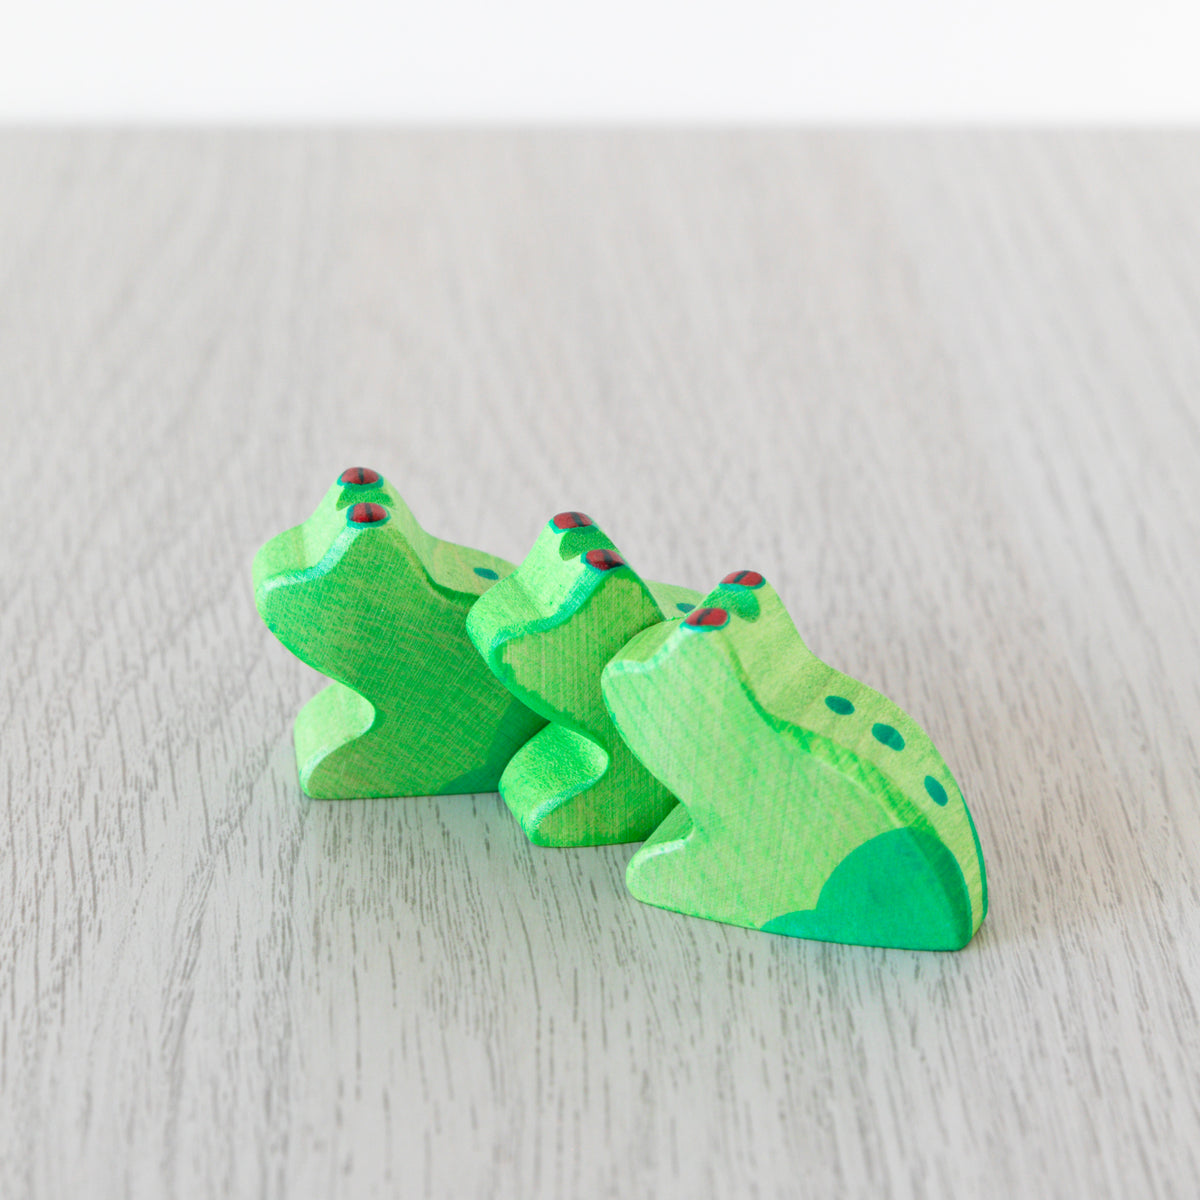 Holztiger Wooden Animal - Frog